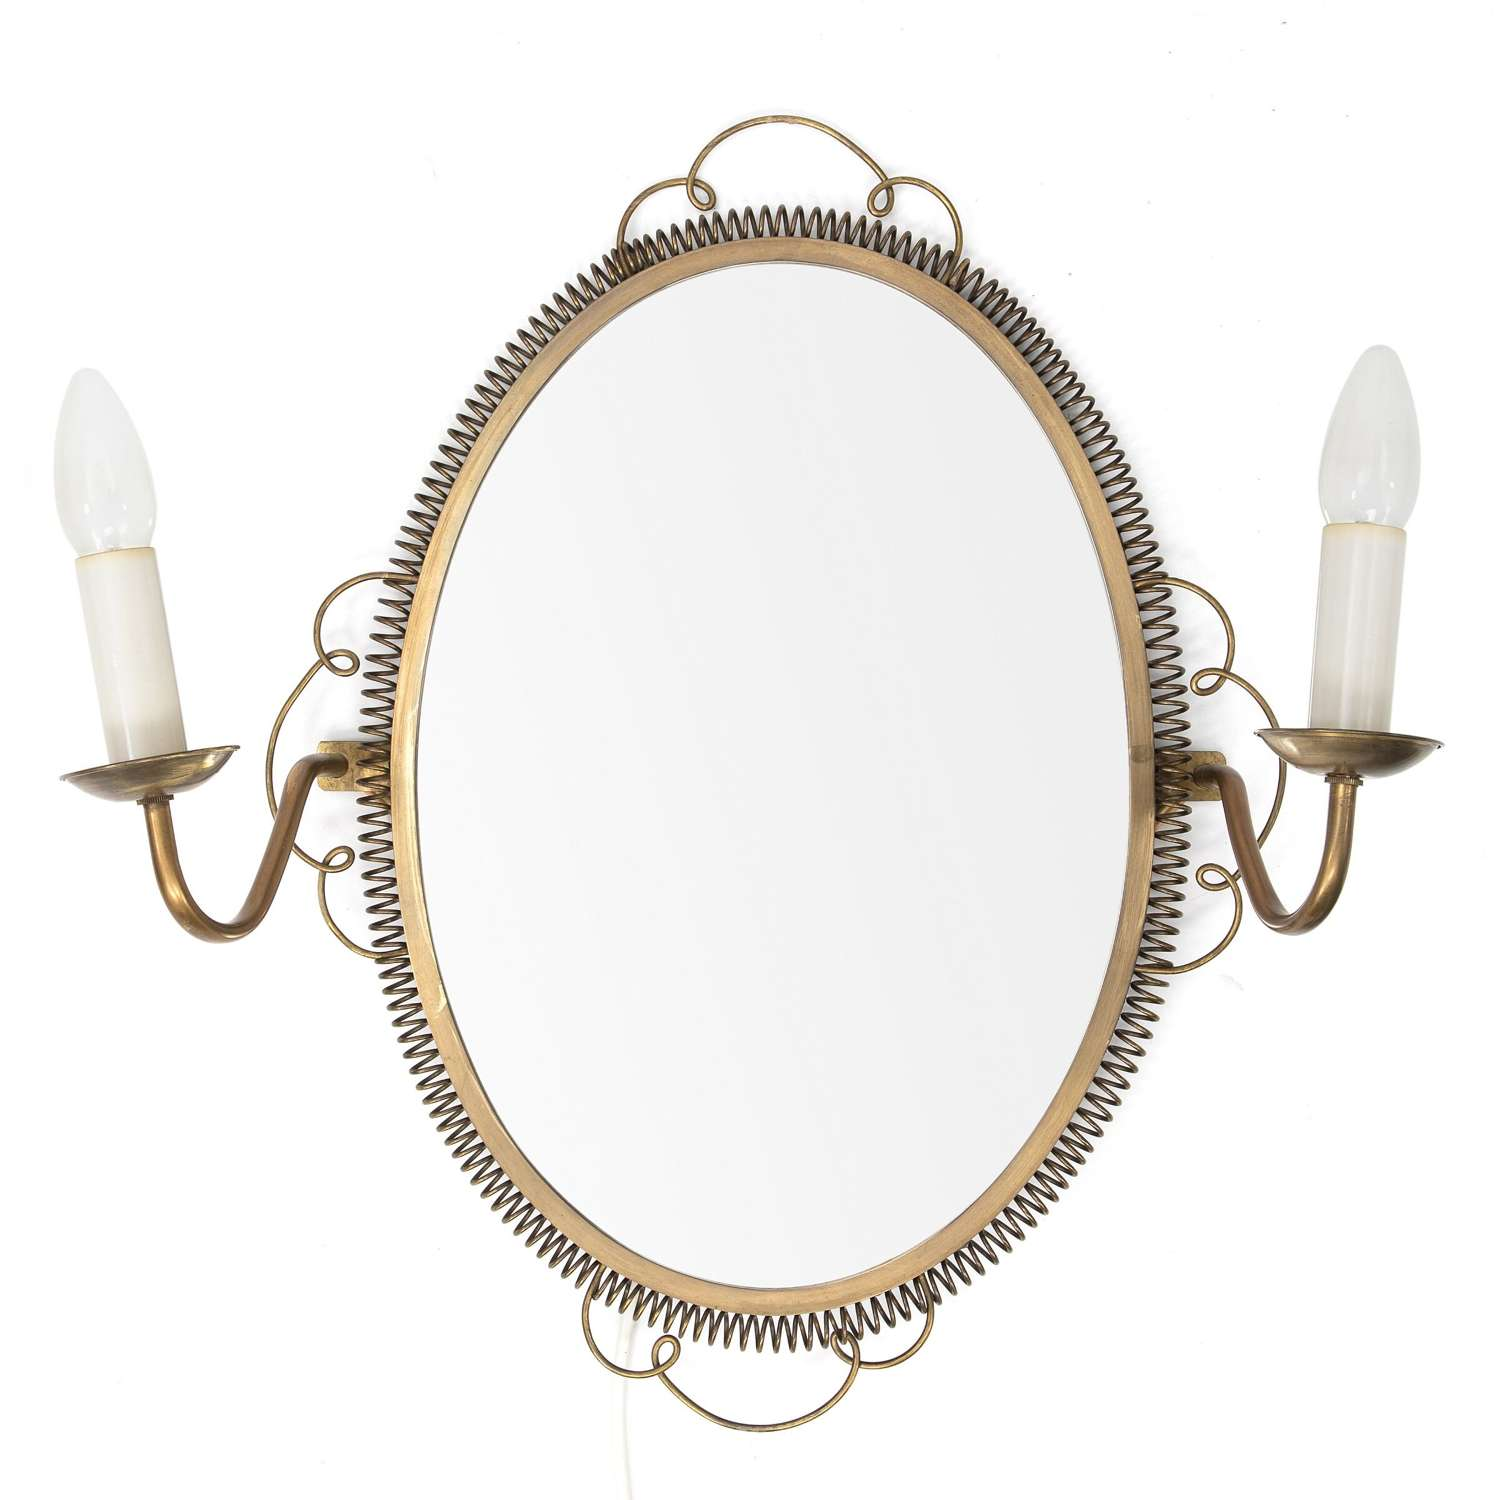 1950s Swedish Brass Mirror with Sconces